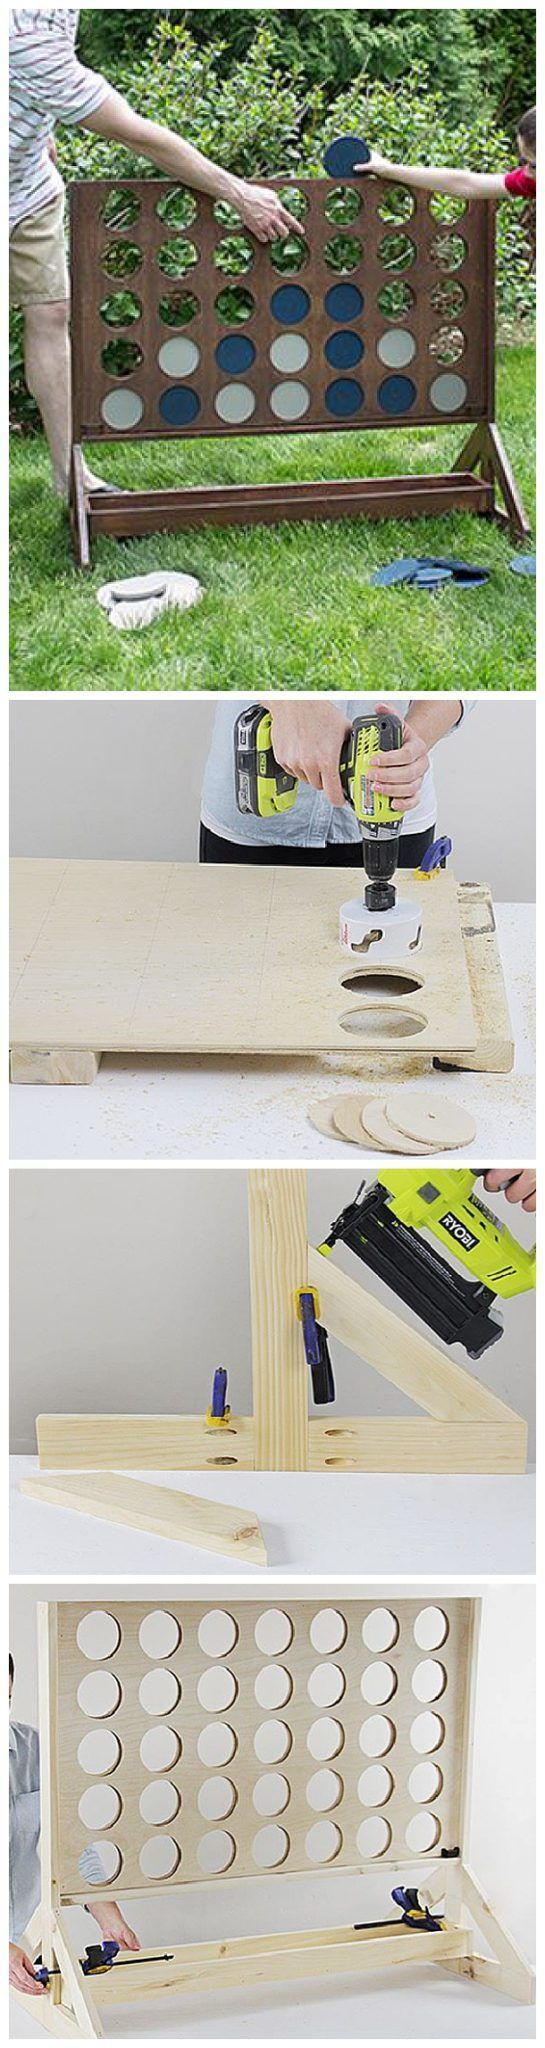 DIY Projects - Outdoor Games - Do It Yourself Connect Four or Four in a Row Game - Easy Woodworking Project - So fun for backyard parties - Tutorial via The Home Depot Blog